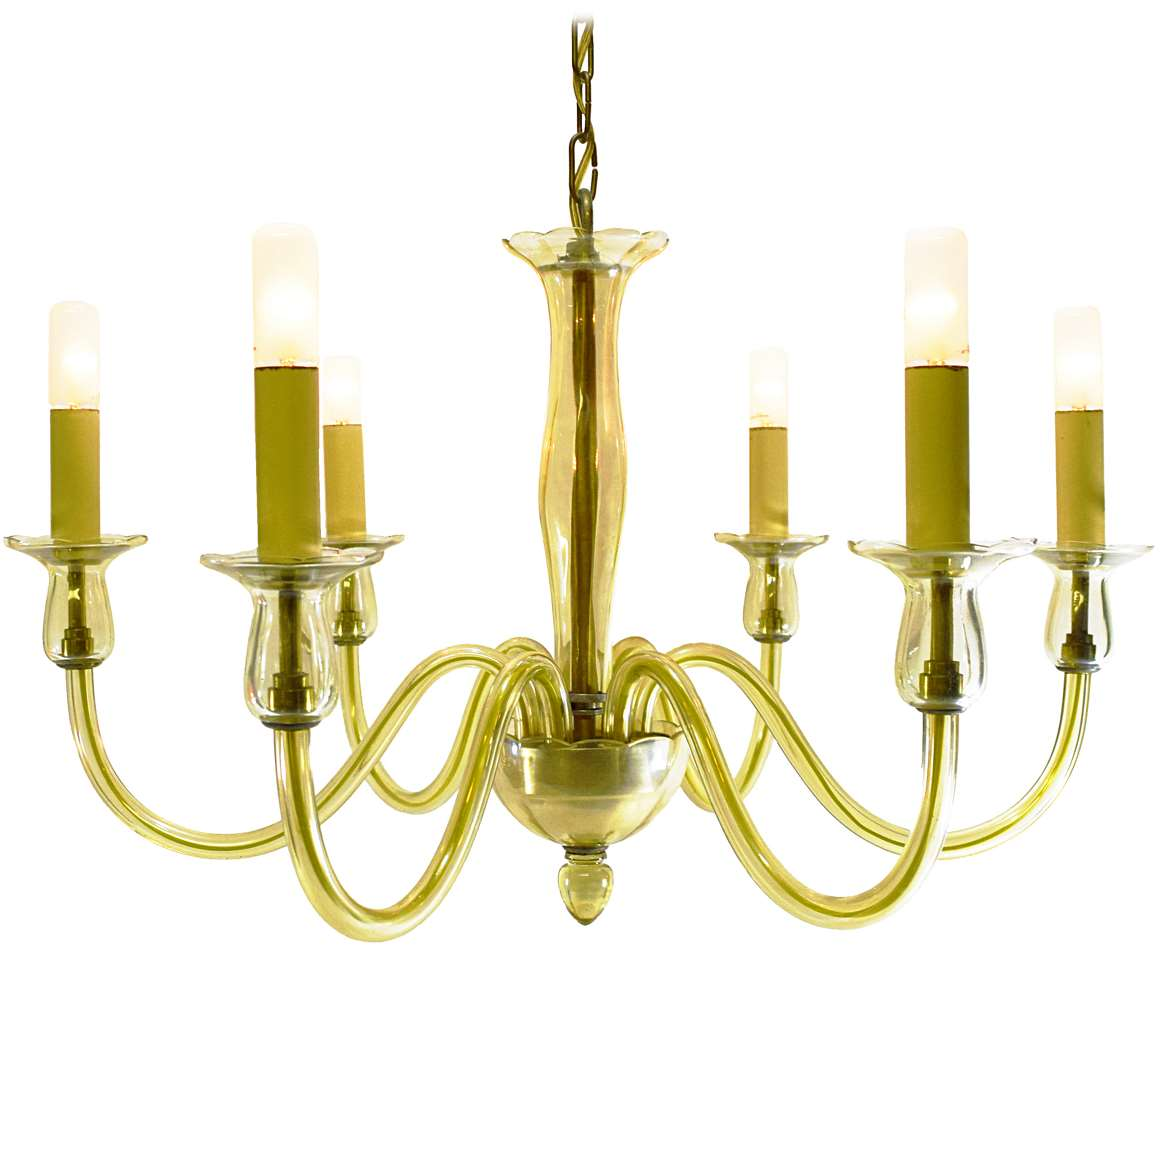 Murano amber glass chandelier vintage info all about vintage lighting - Murano glass lighting ...